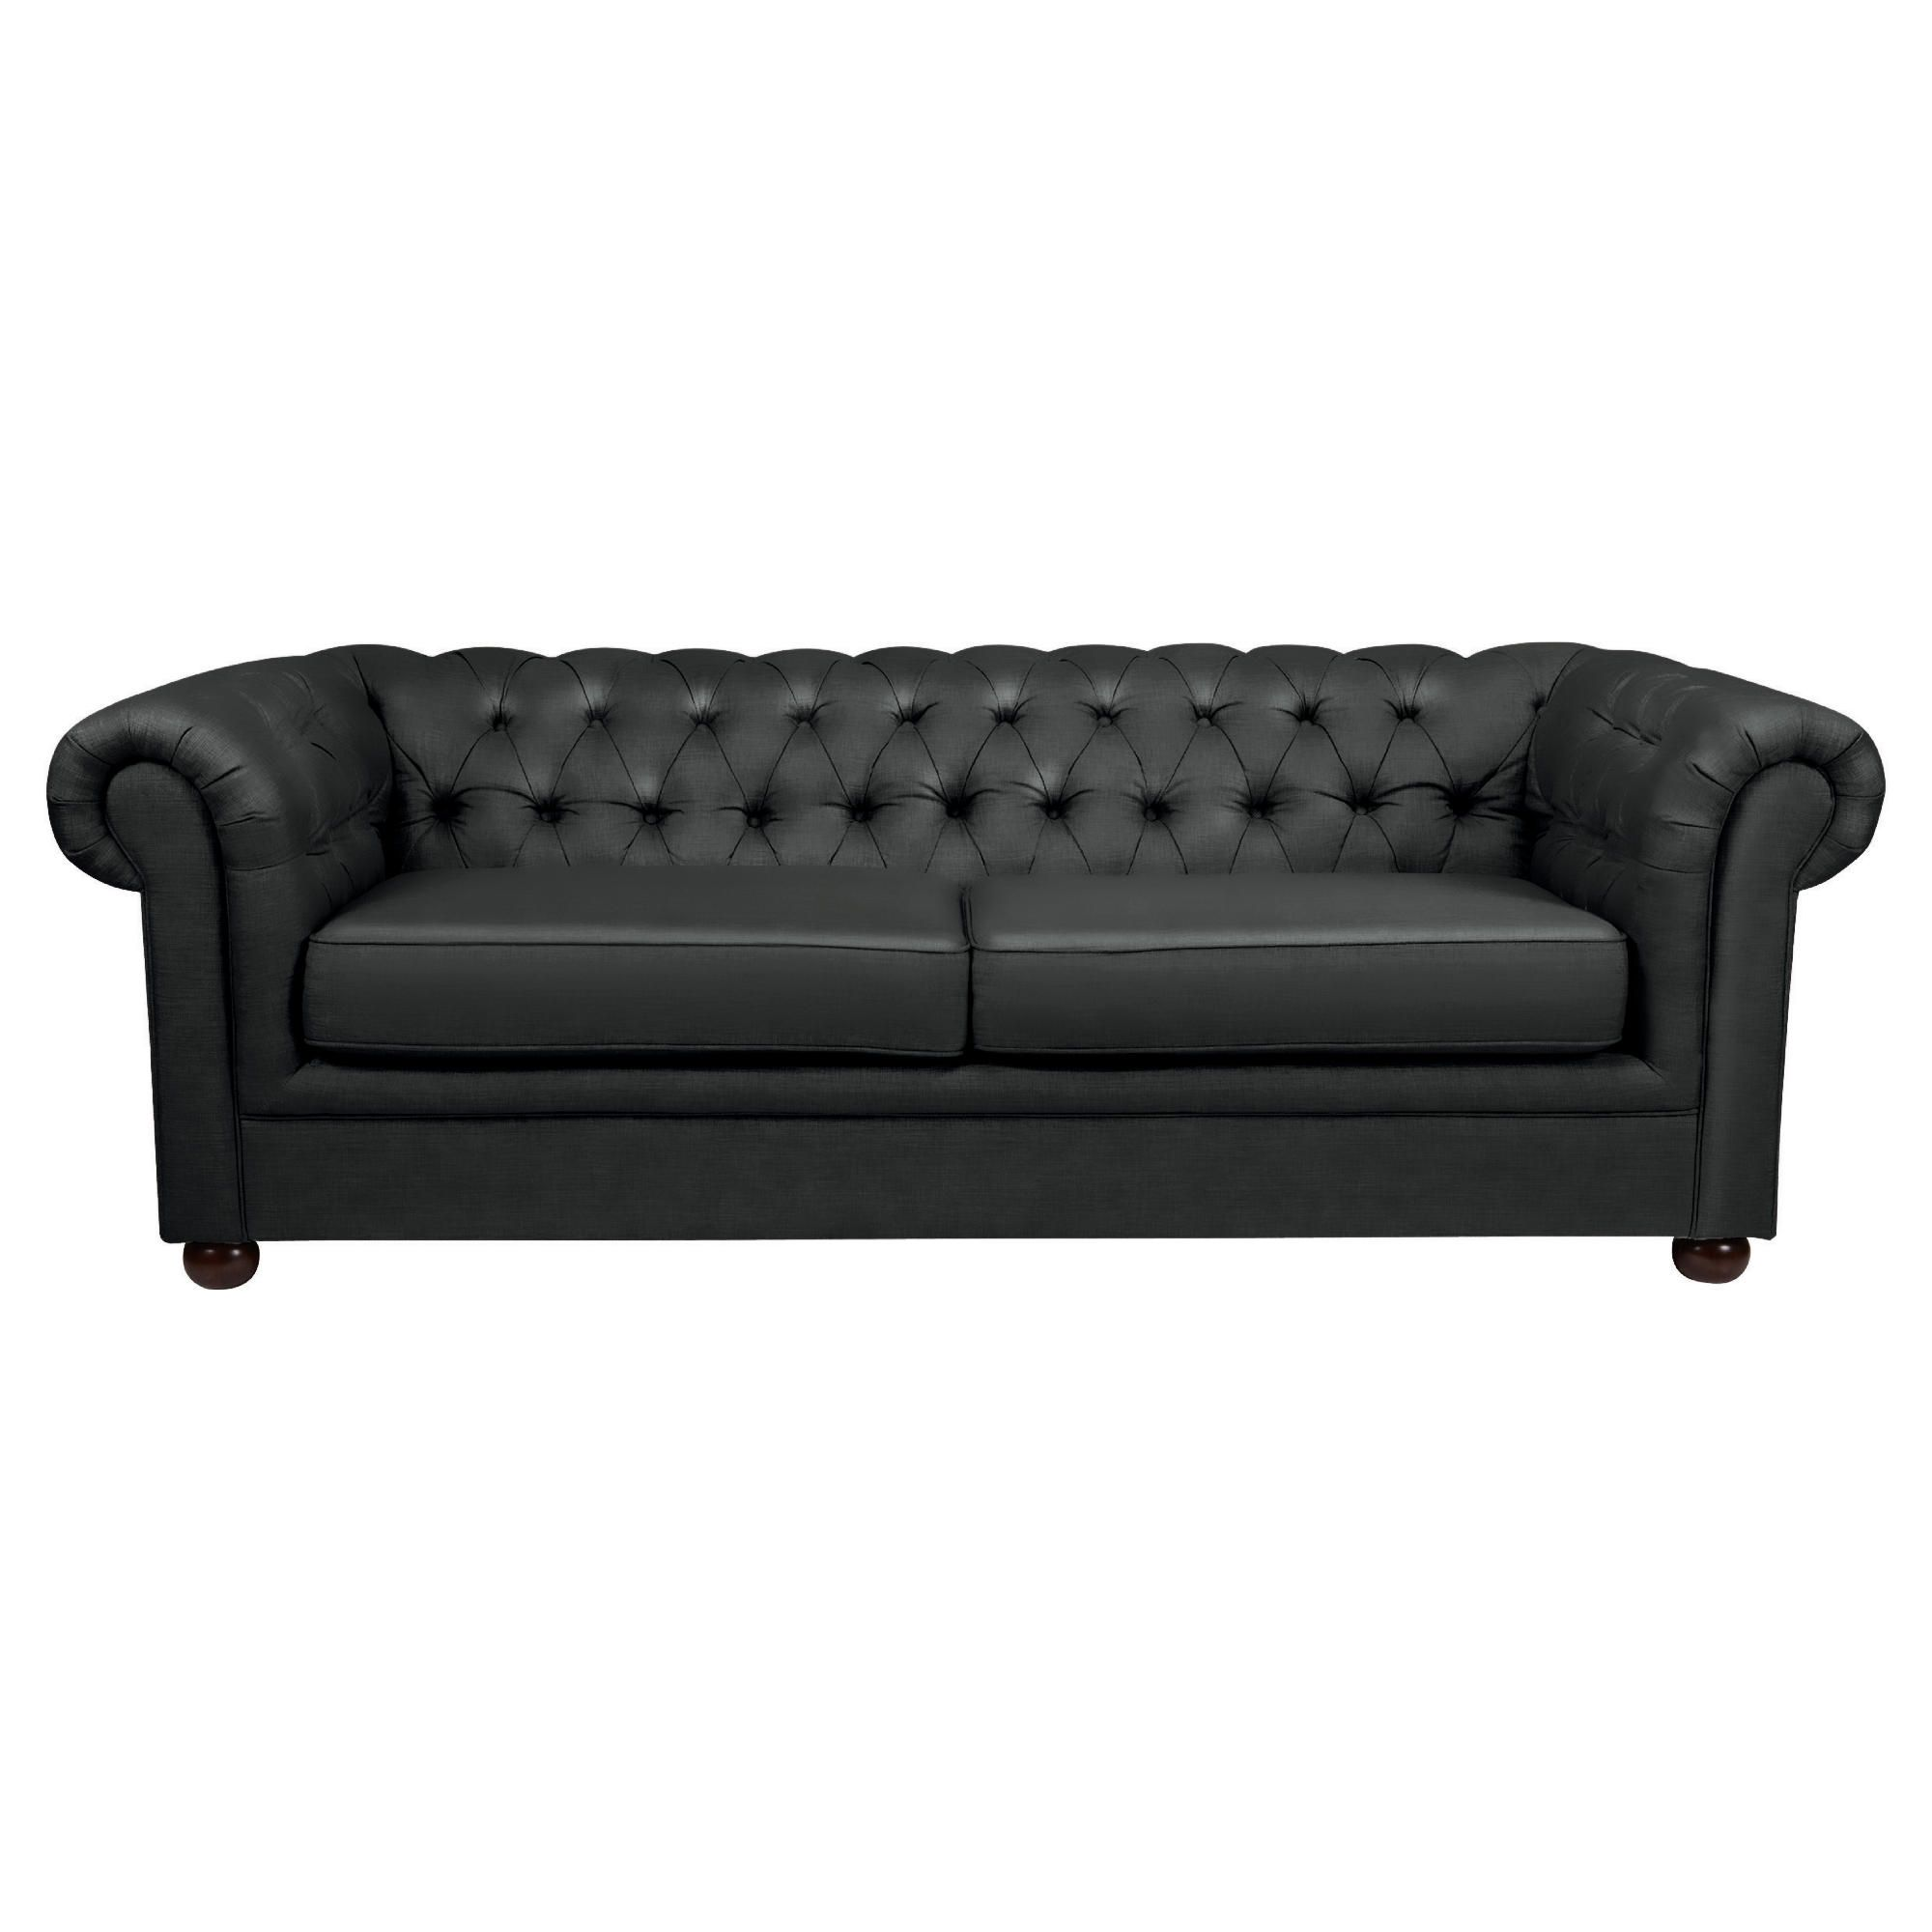 Chesterfield Fabric Sofabed Black, Velvet at Tesco Direct